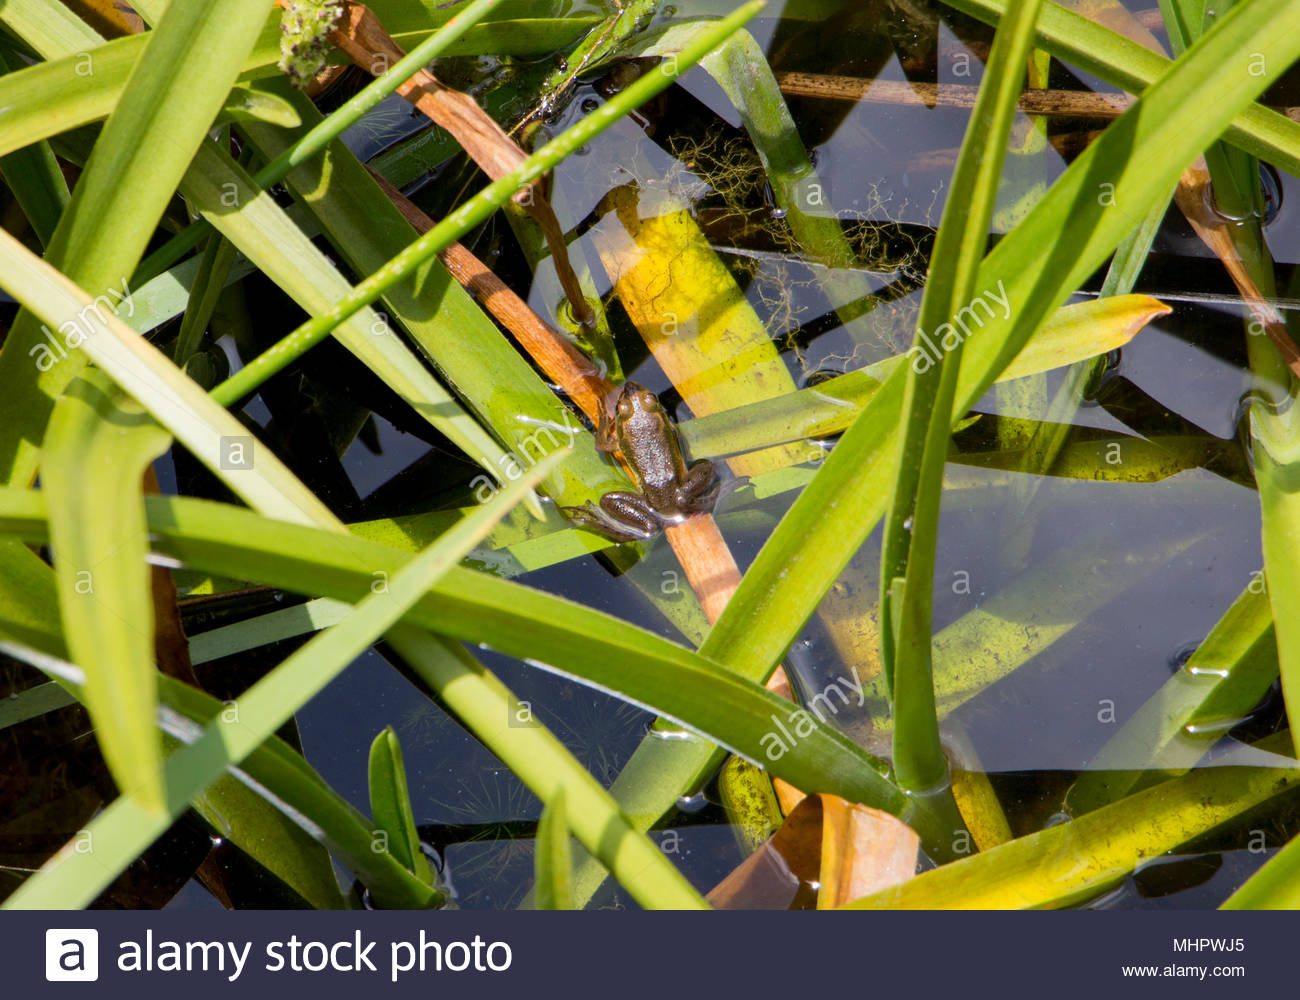 Female bronze frog (Lithobates clamitans clamitans) floating in lake - Long Key Natural Area and Nature Center, Davie, Florida, USA - Stock Image